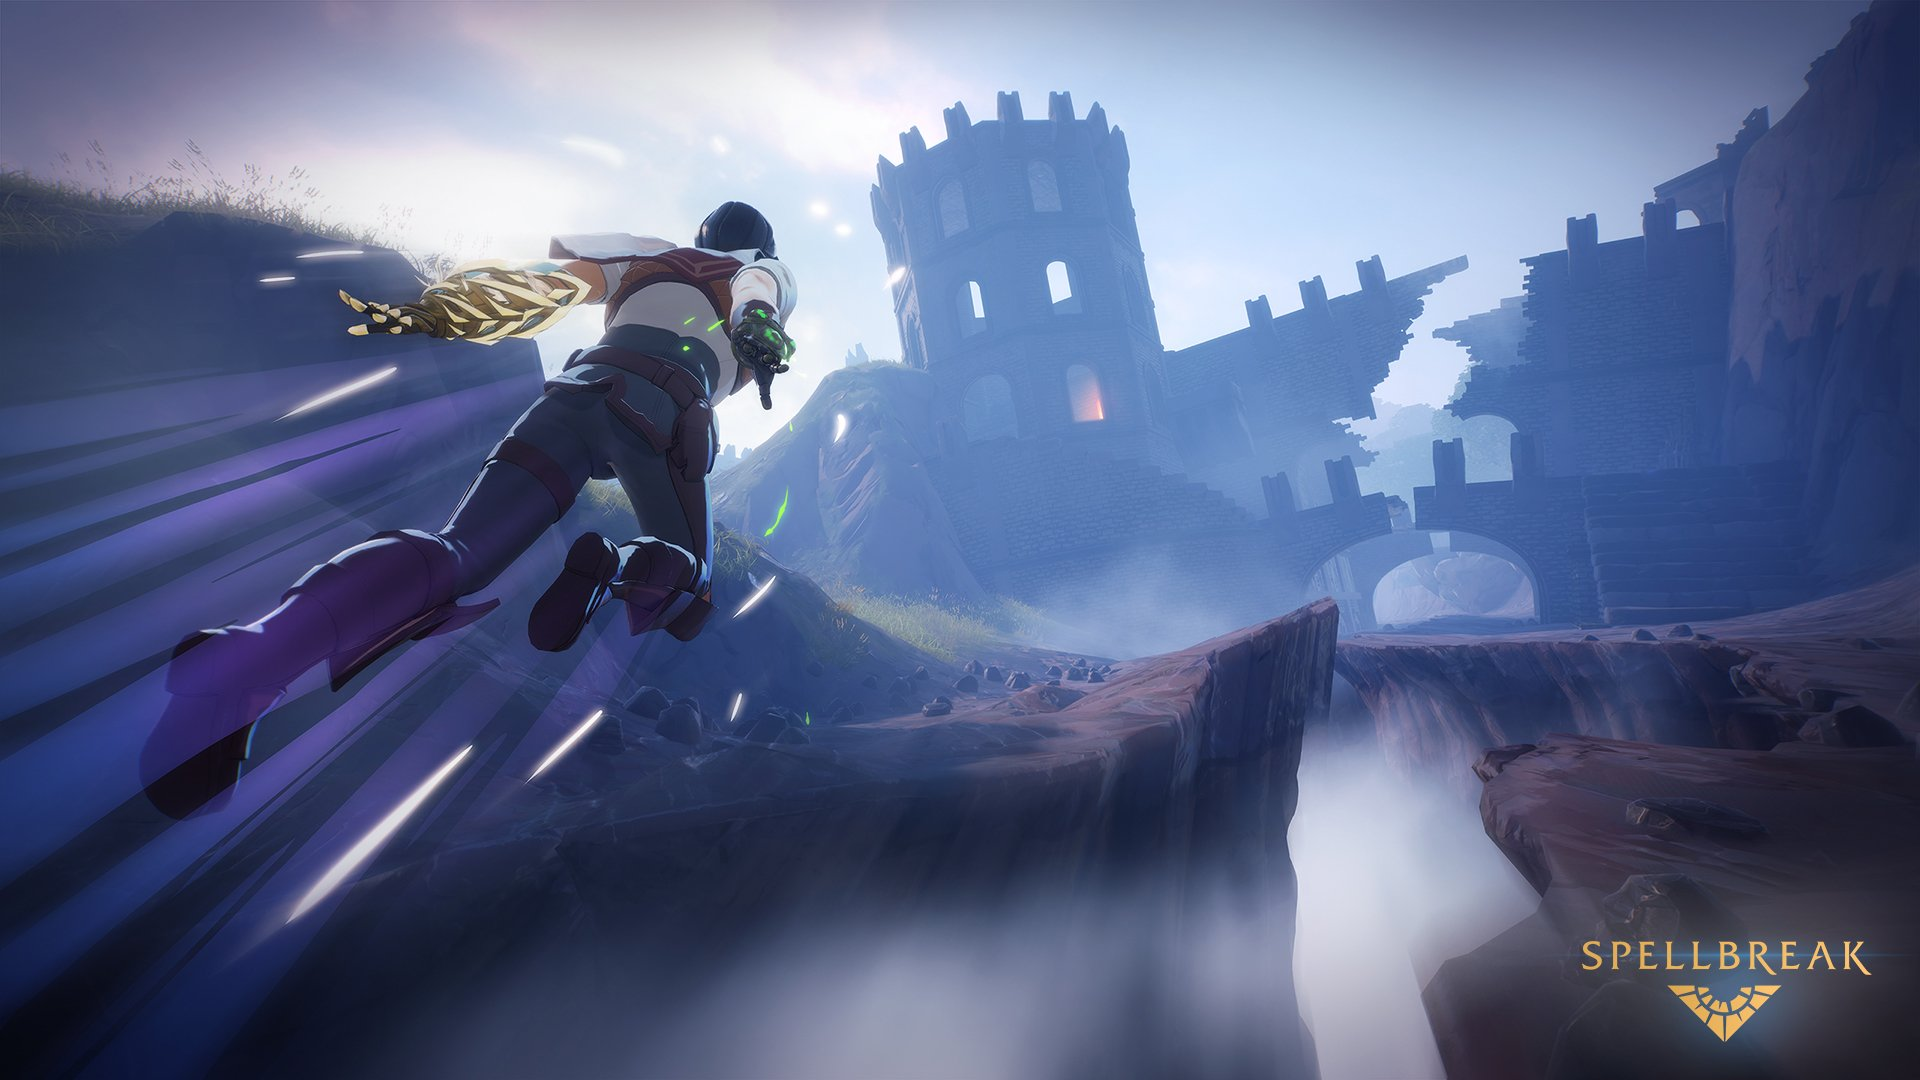 Spellbreak roadmap reveals Chapter system and plans for new Gauntlets